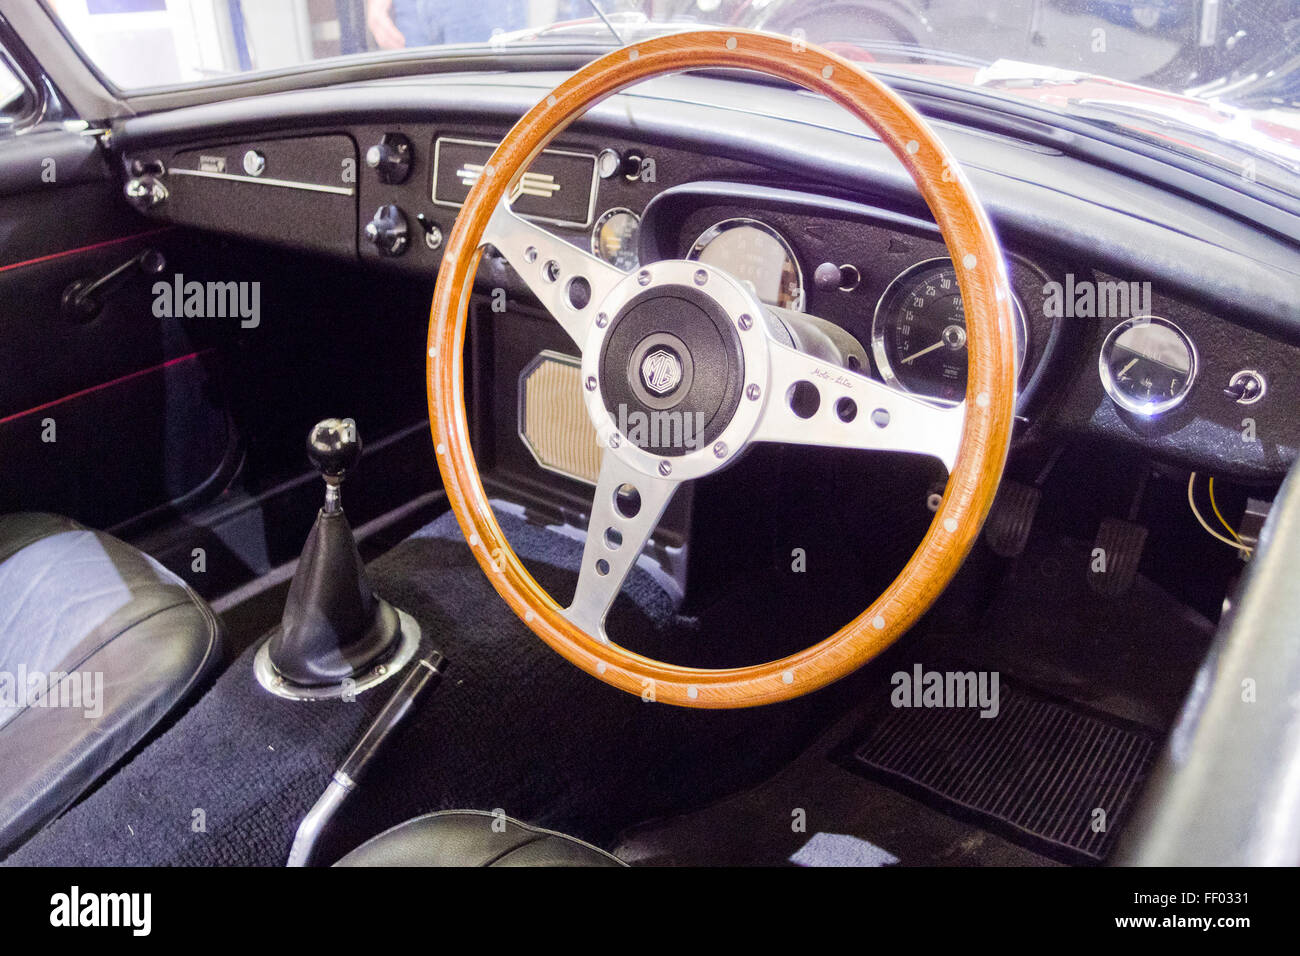 interior of a mgb roadster classic british sports car uk stock photo royalty free image. Black Bedroom Furniture Sets. Home Design Ideas